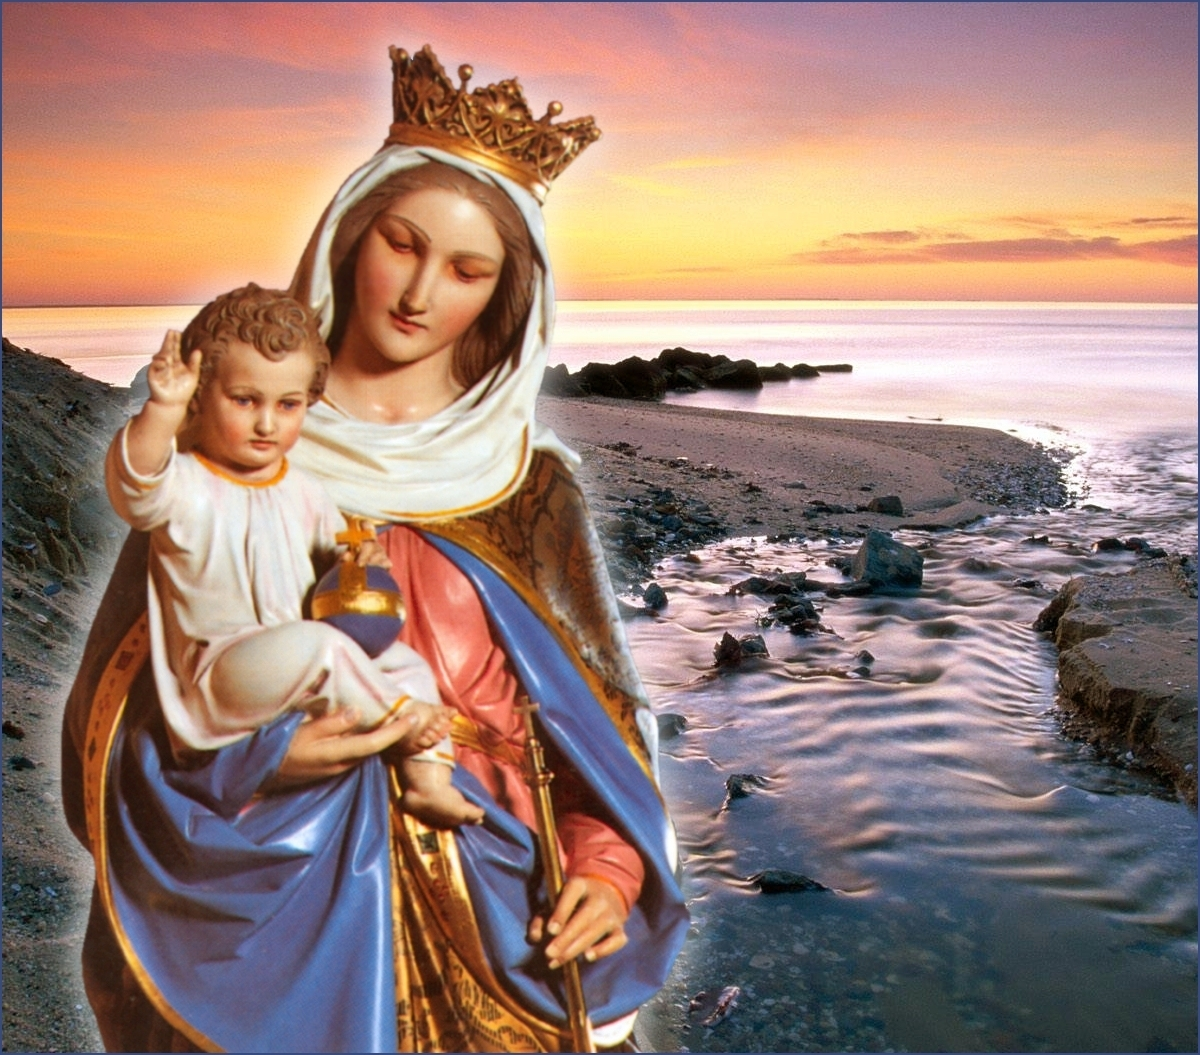 glory be to jesus and mary